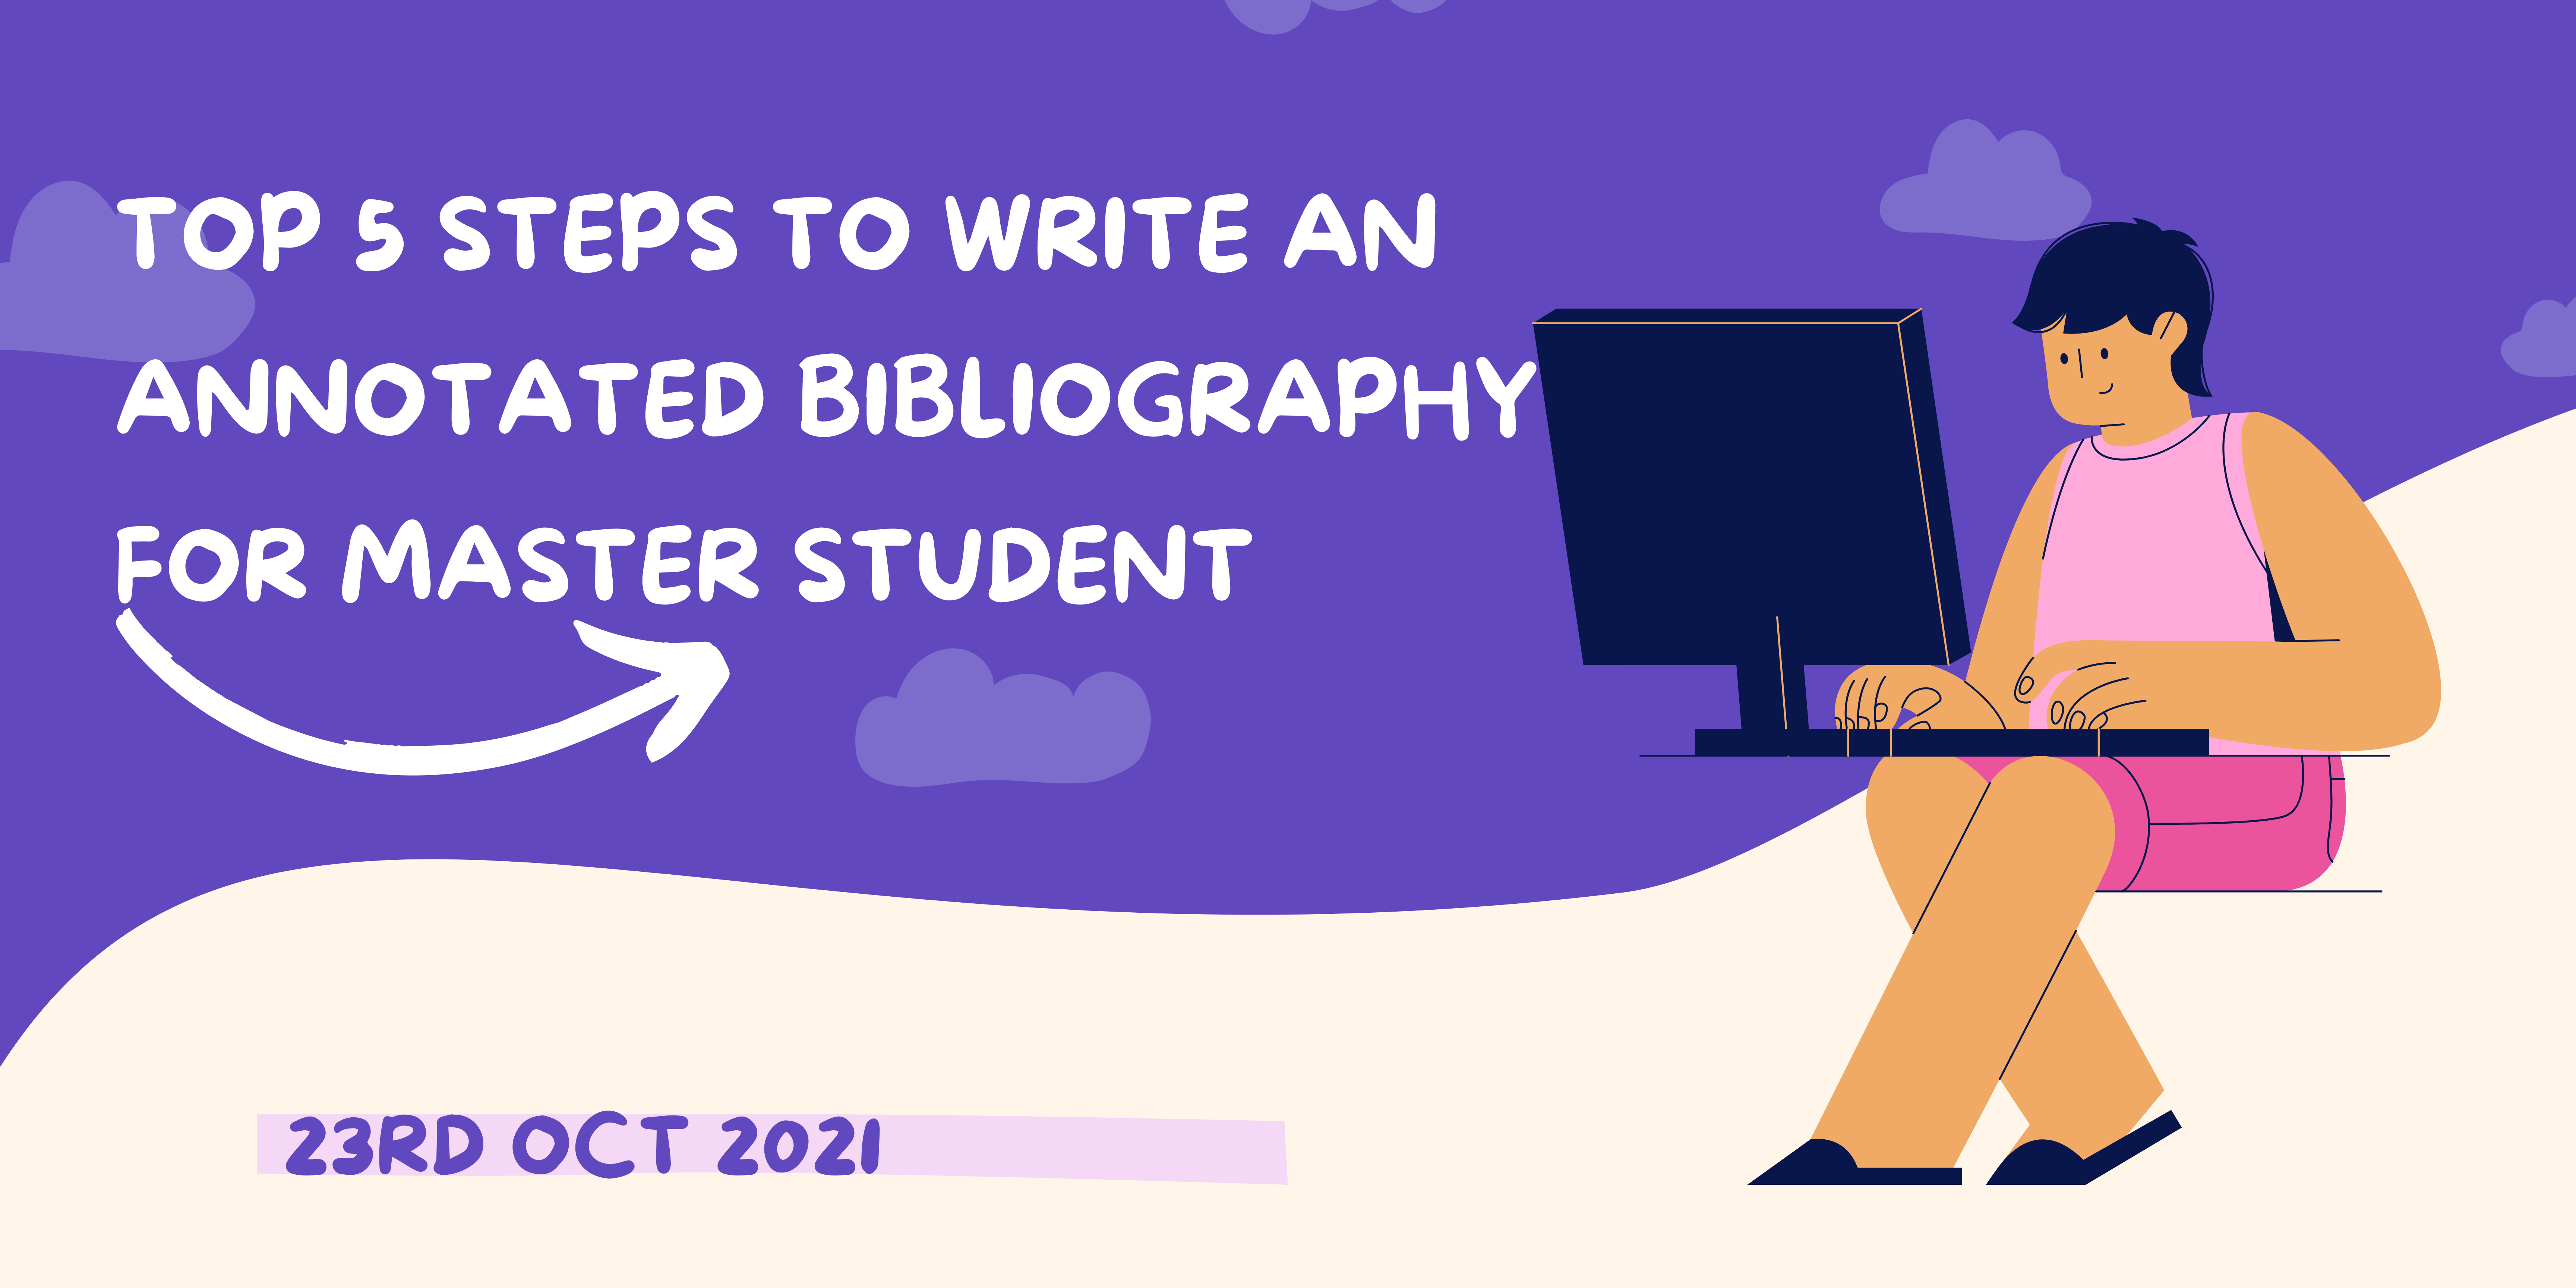 Top 5 Steps to Write an Annotated Bibliography for Master Student